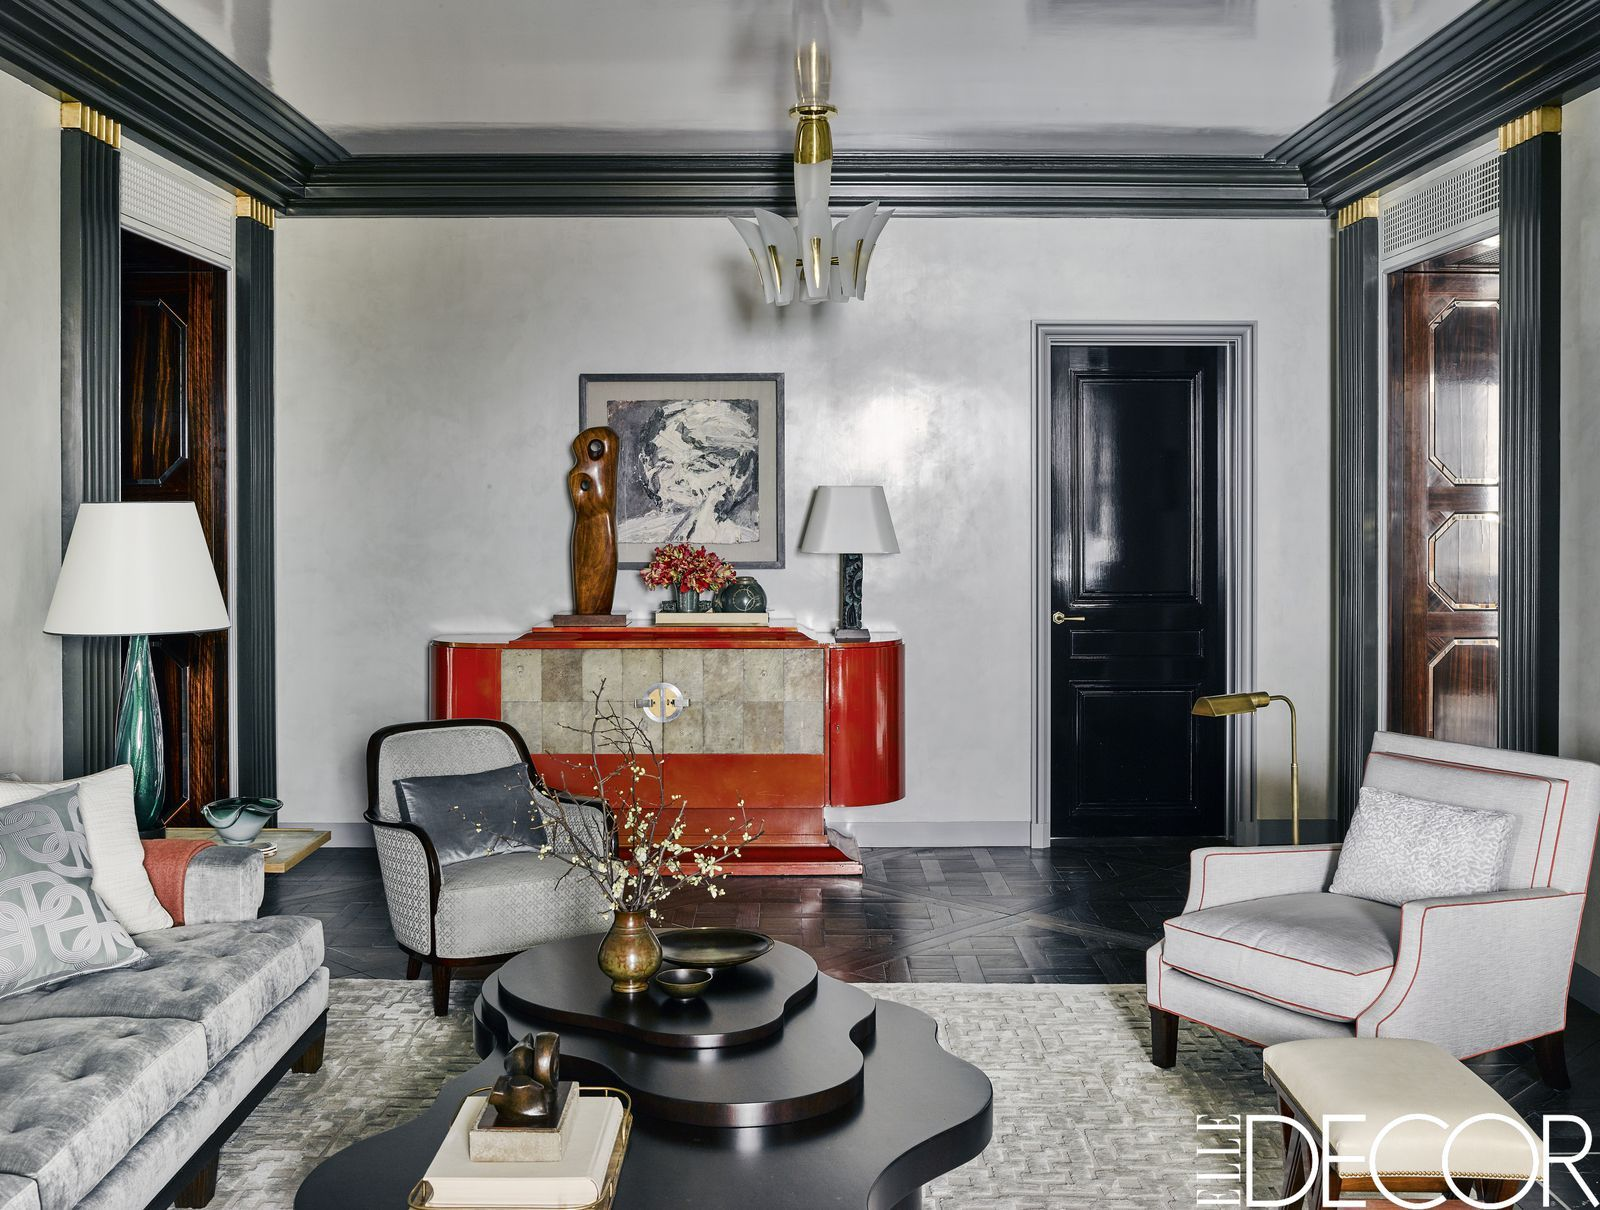 This Art Deco Apartment In Chicago Is All About Personal Style Interior Deco Art Deco Living Room Art Deco Interior Design